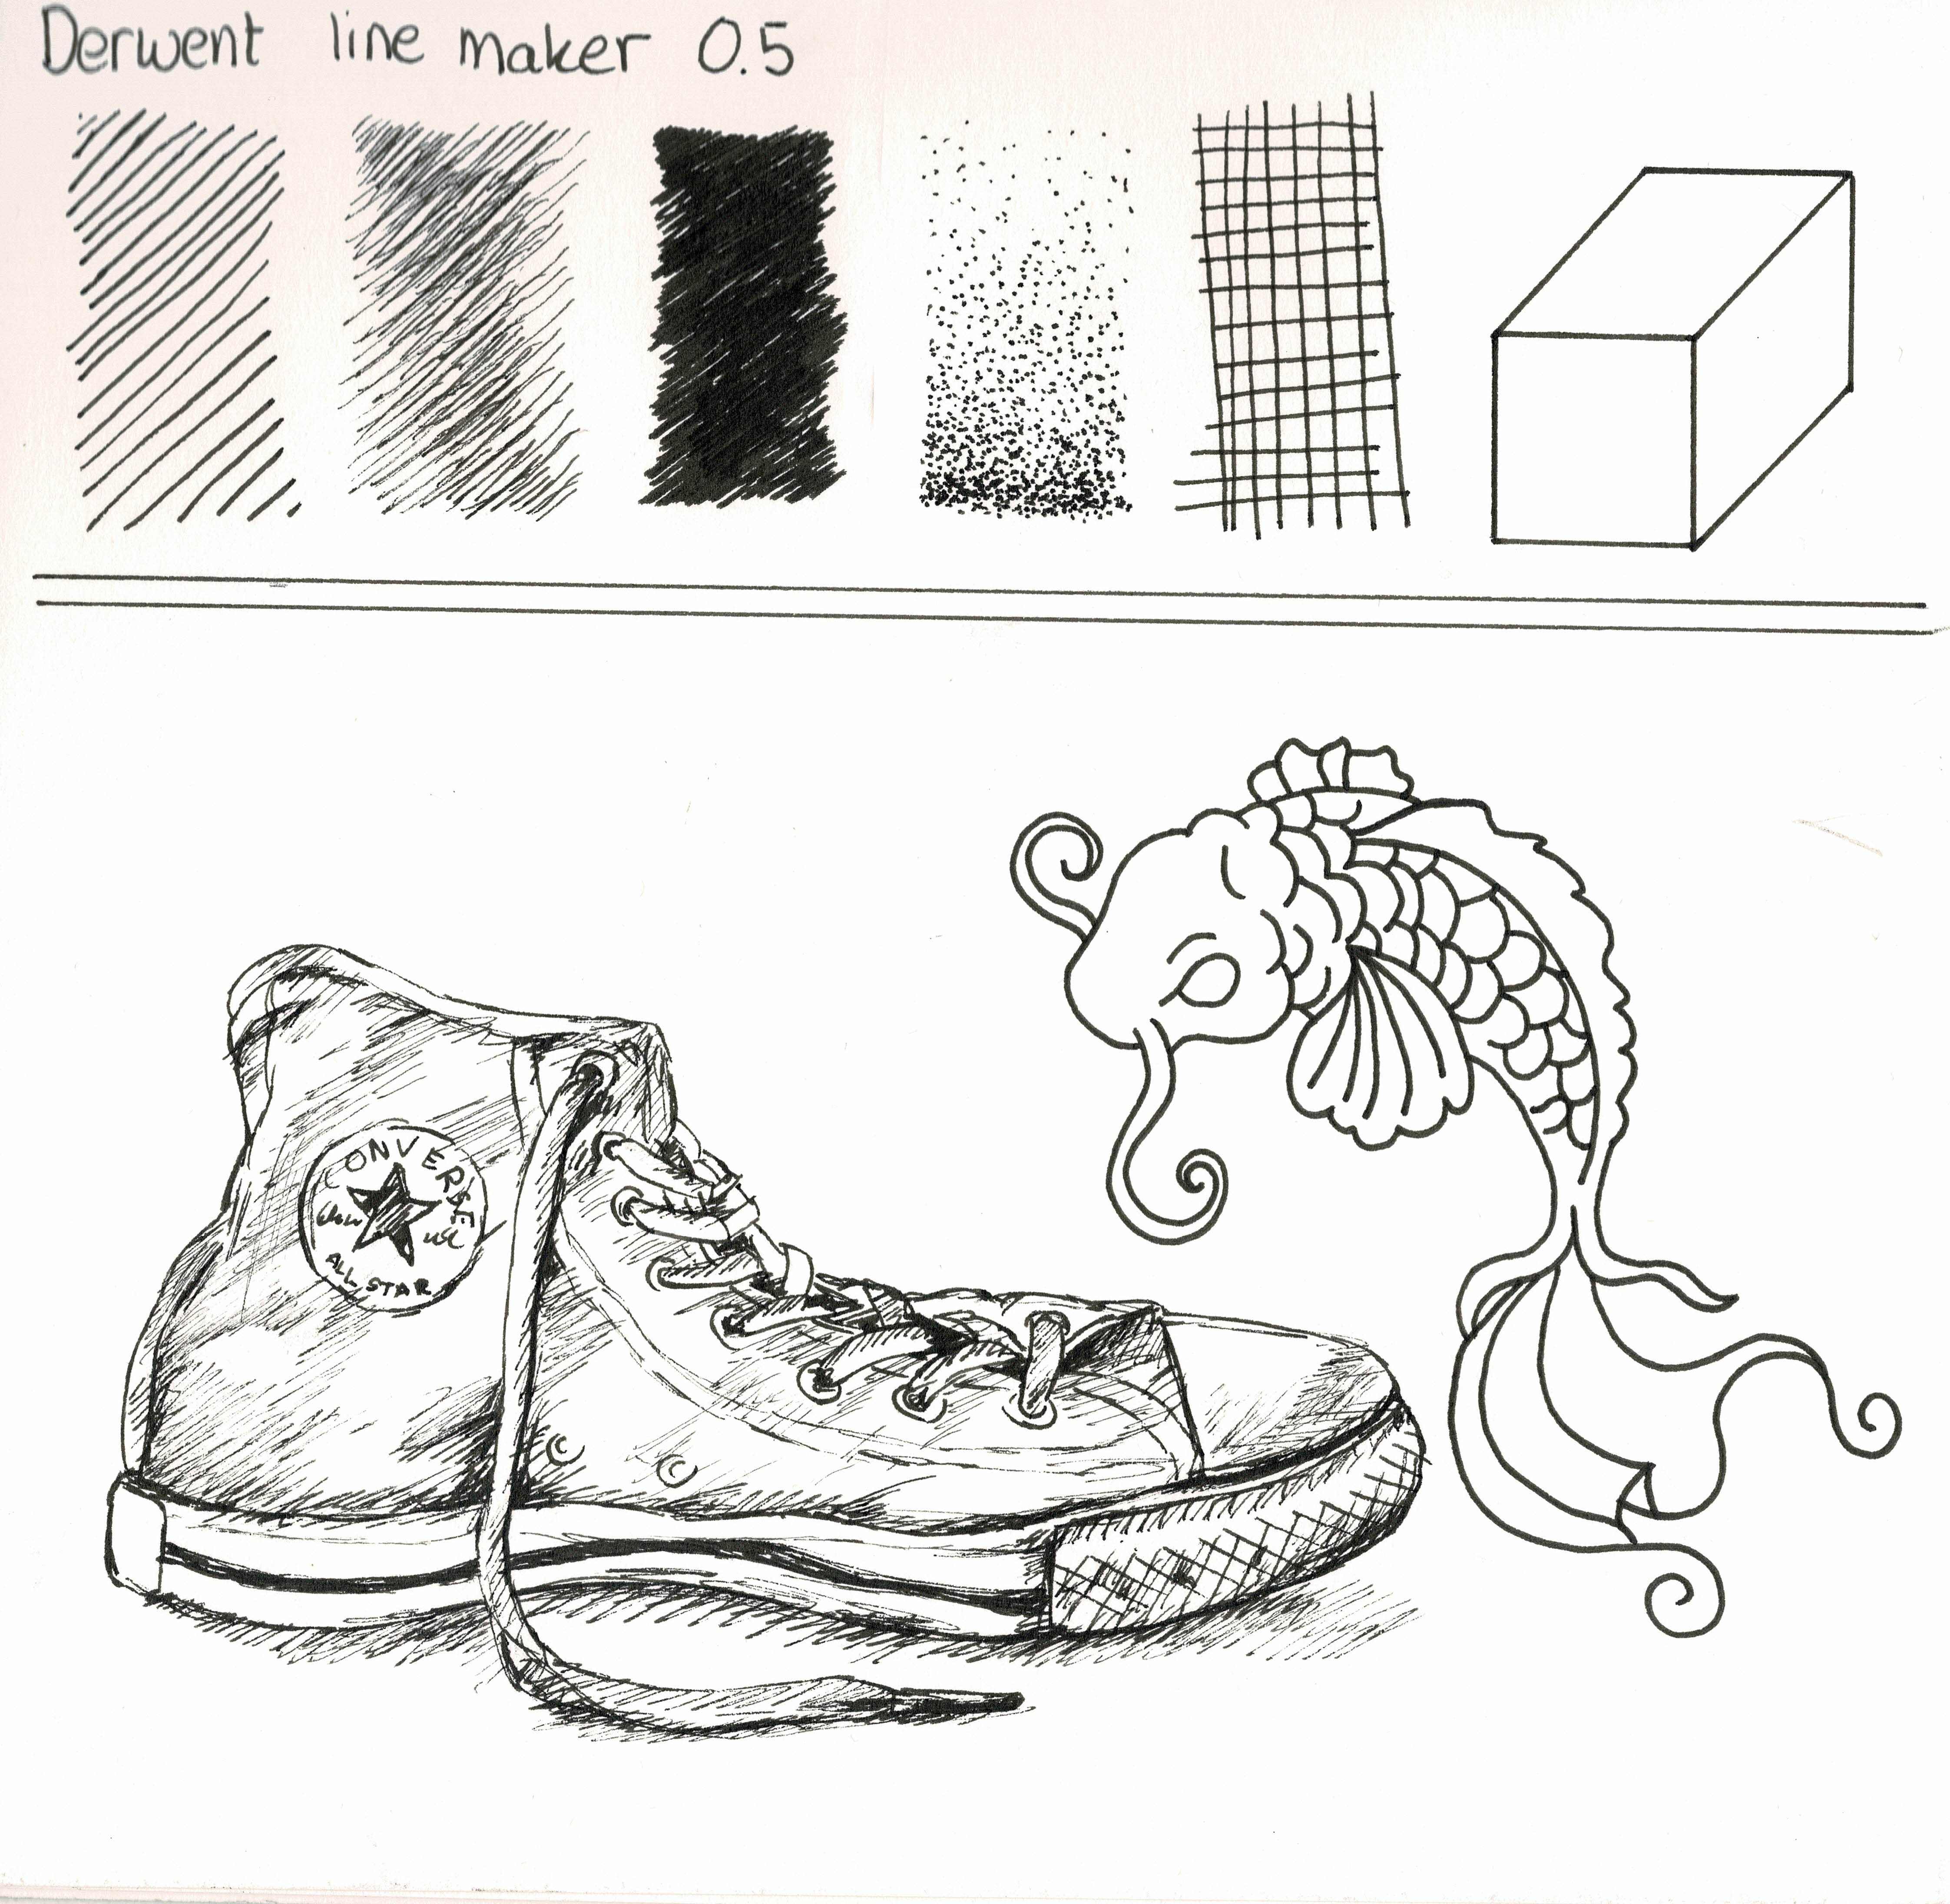 Drawing With Derwent Line Maker Pens